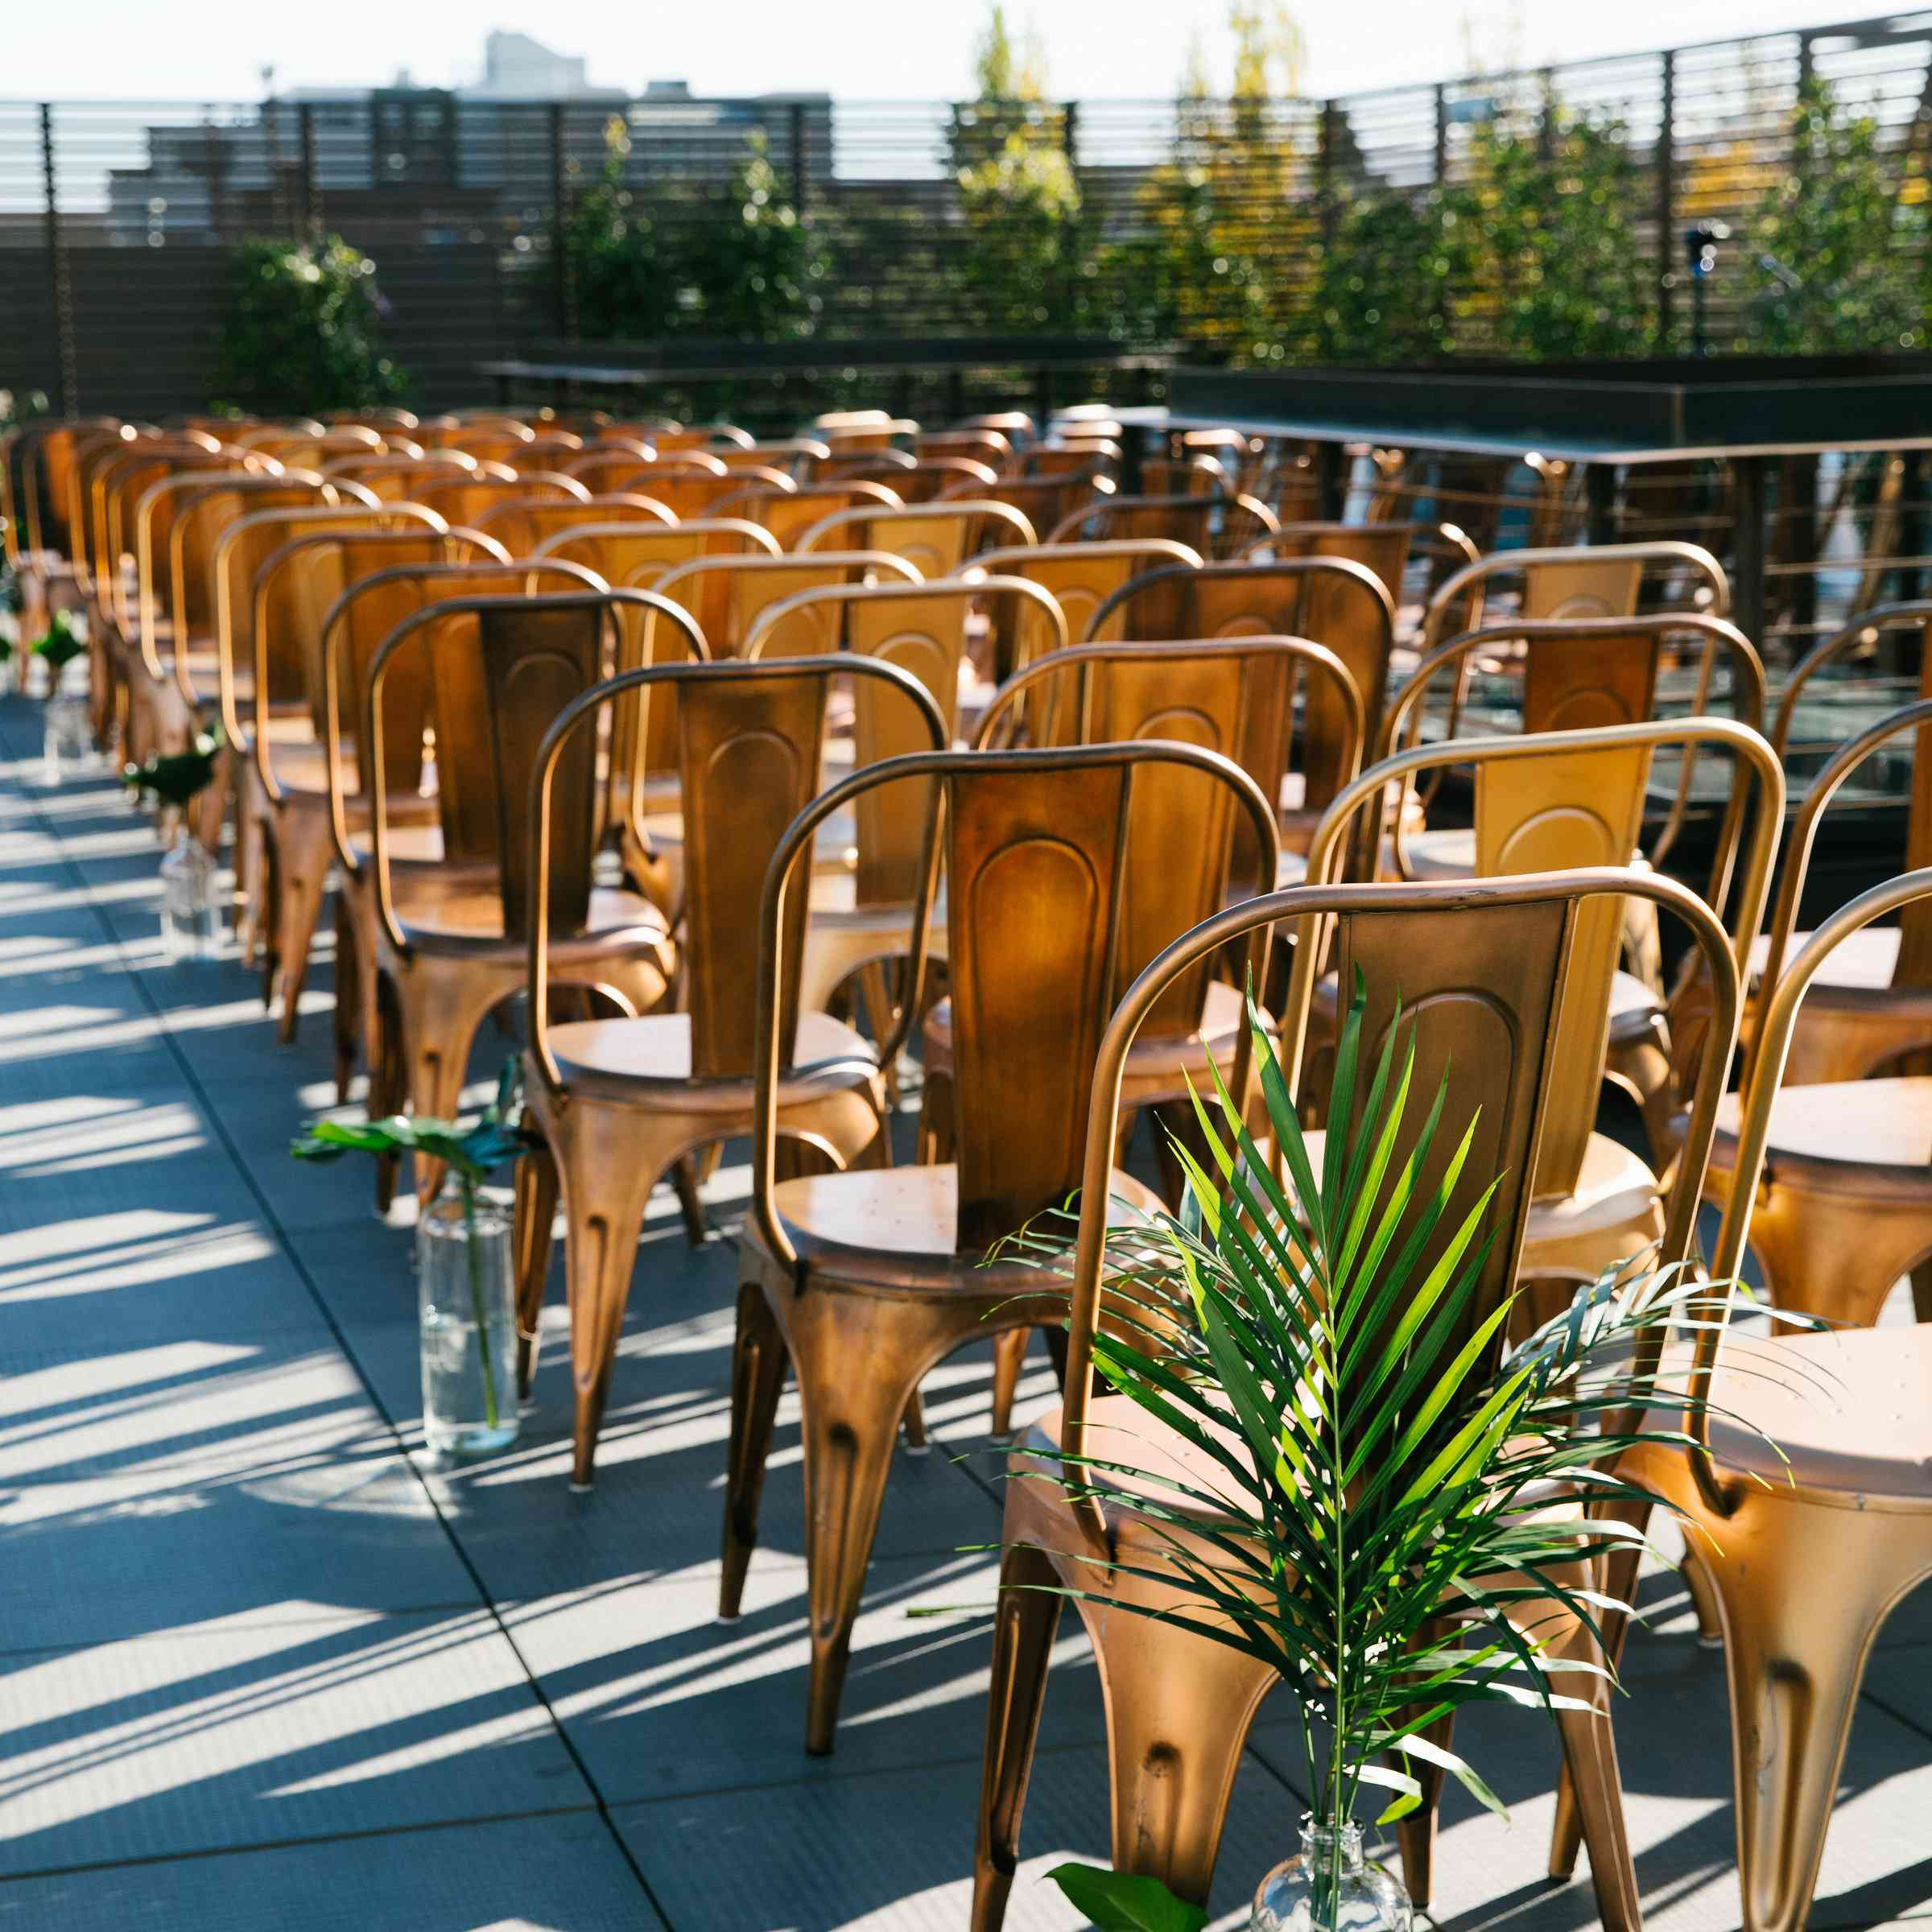 Gold chairs in seating arrangements